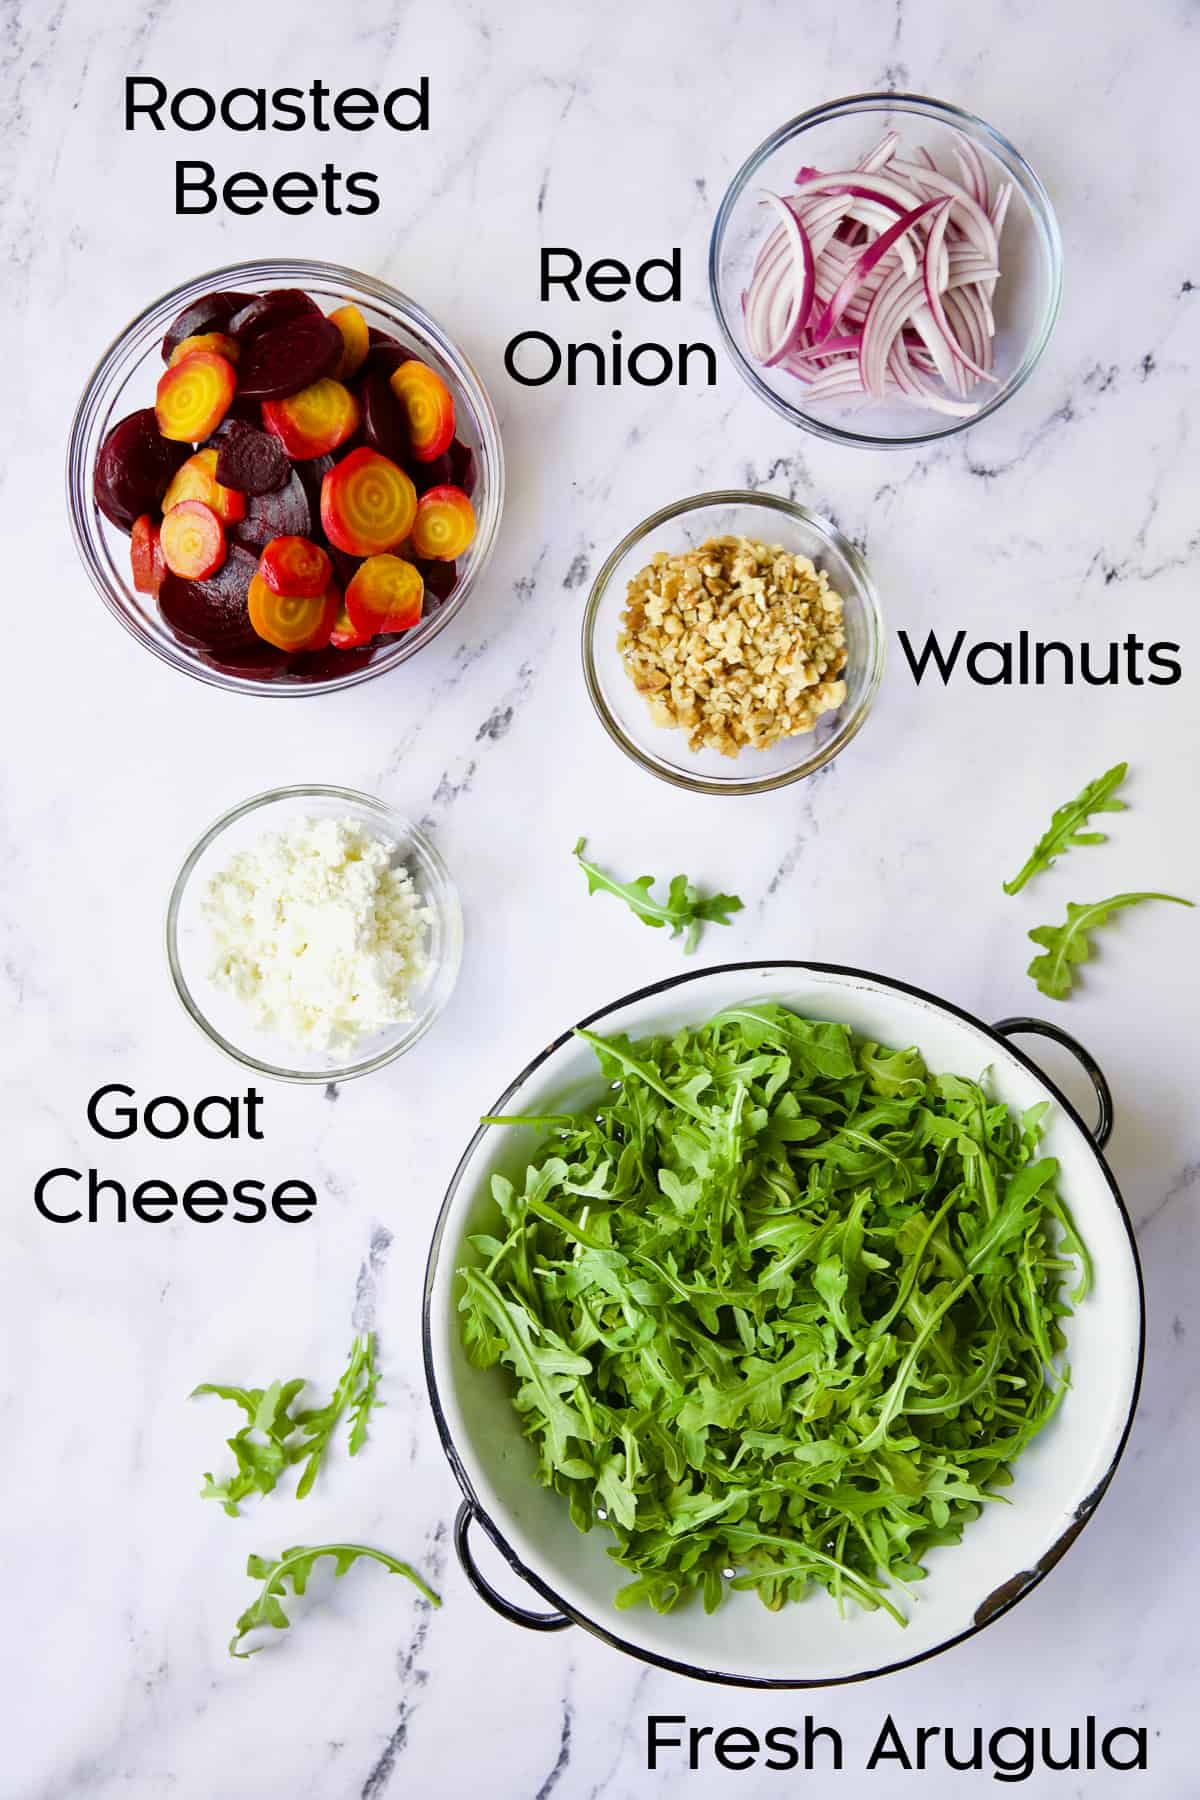 Ingredients for Roasted Beet Salad with Walnuts Goat Cheese in glass bowls.